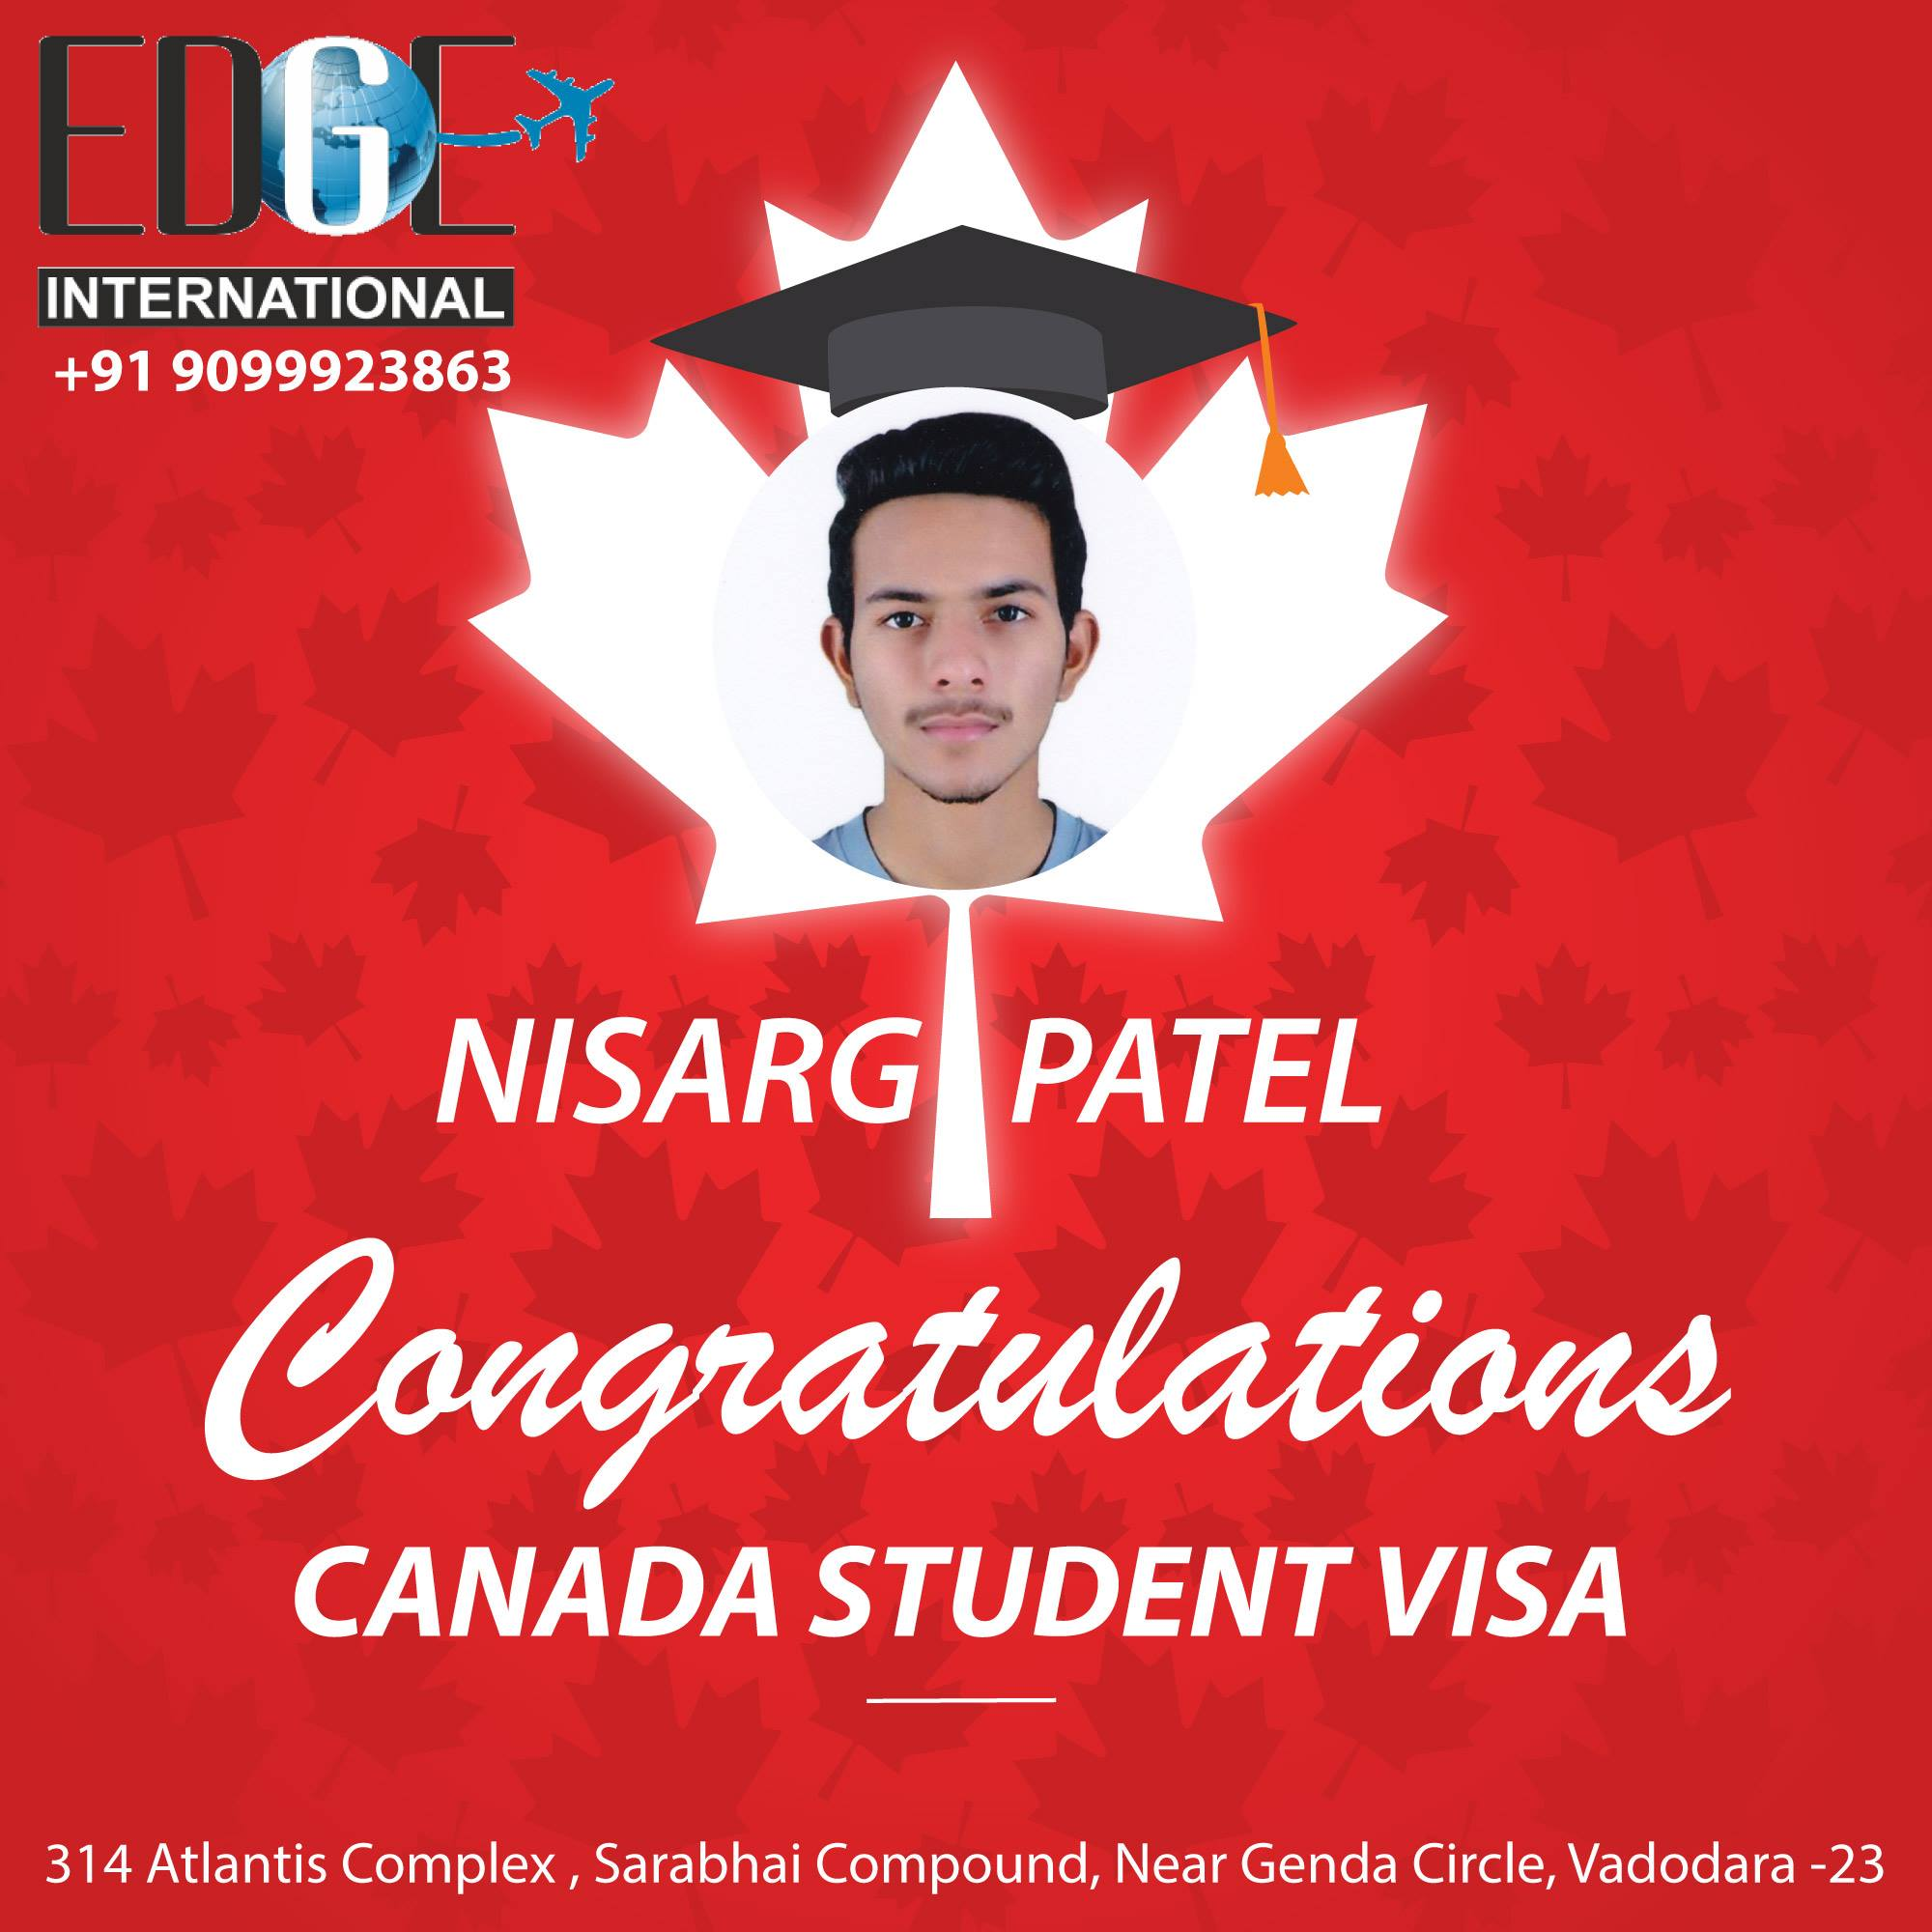 Many Congratulations to Nisarg Patel for CanadaStudentVisa for January